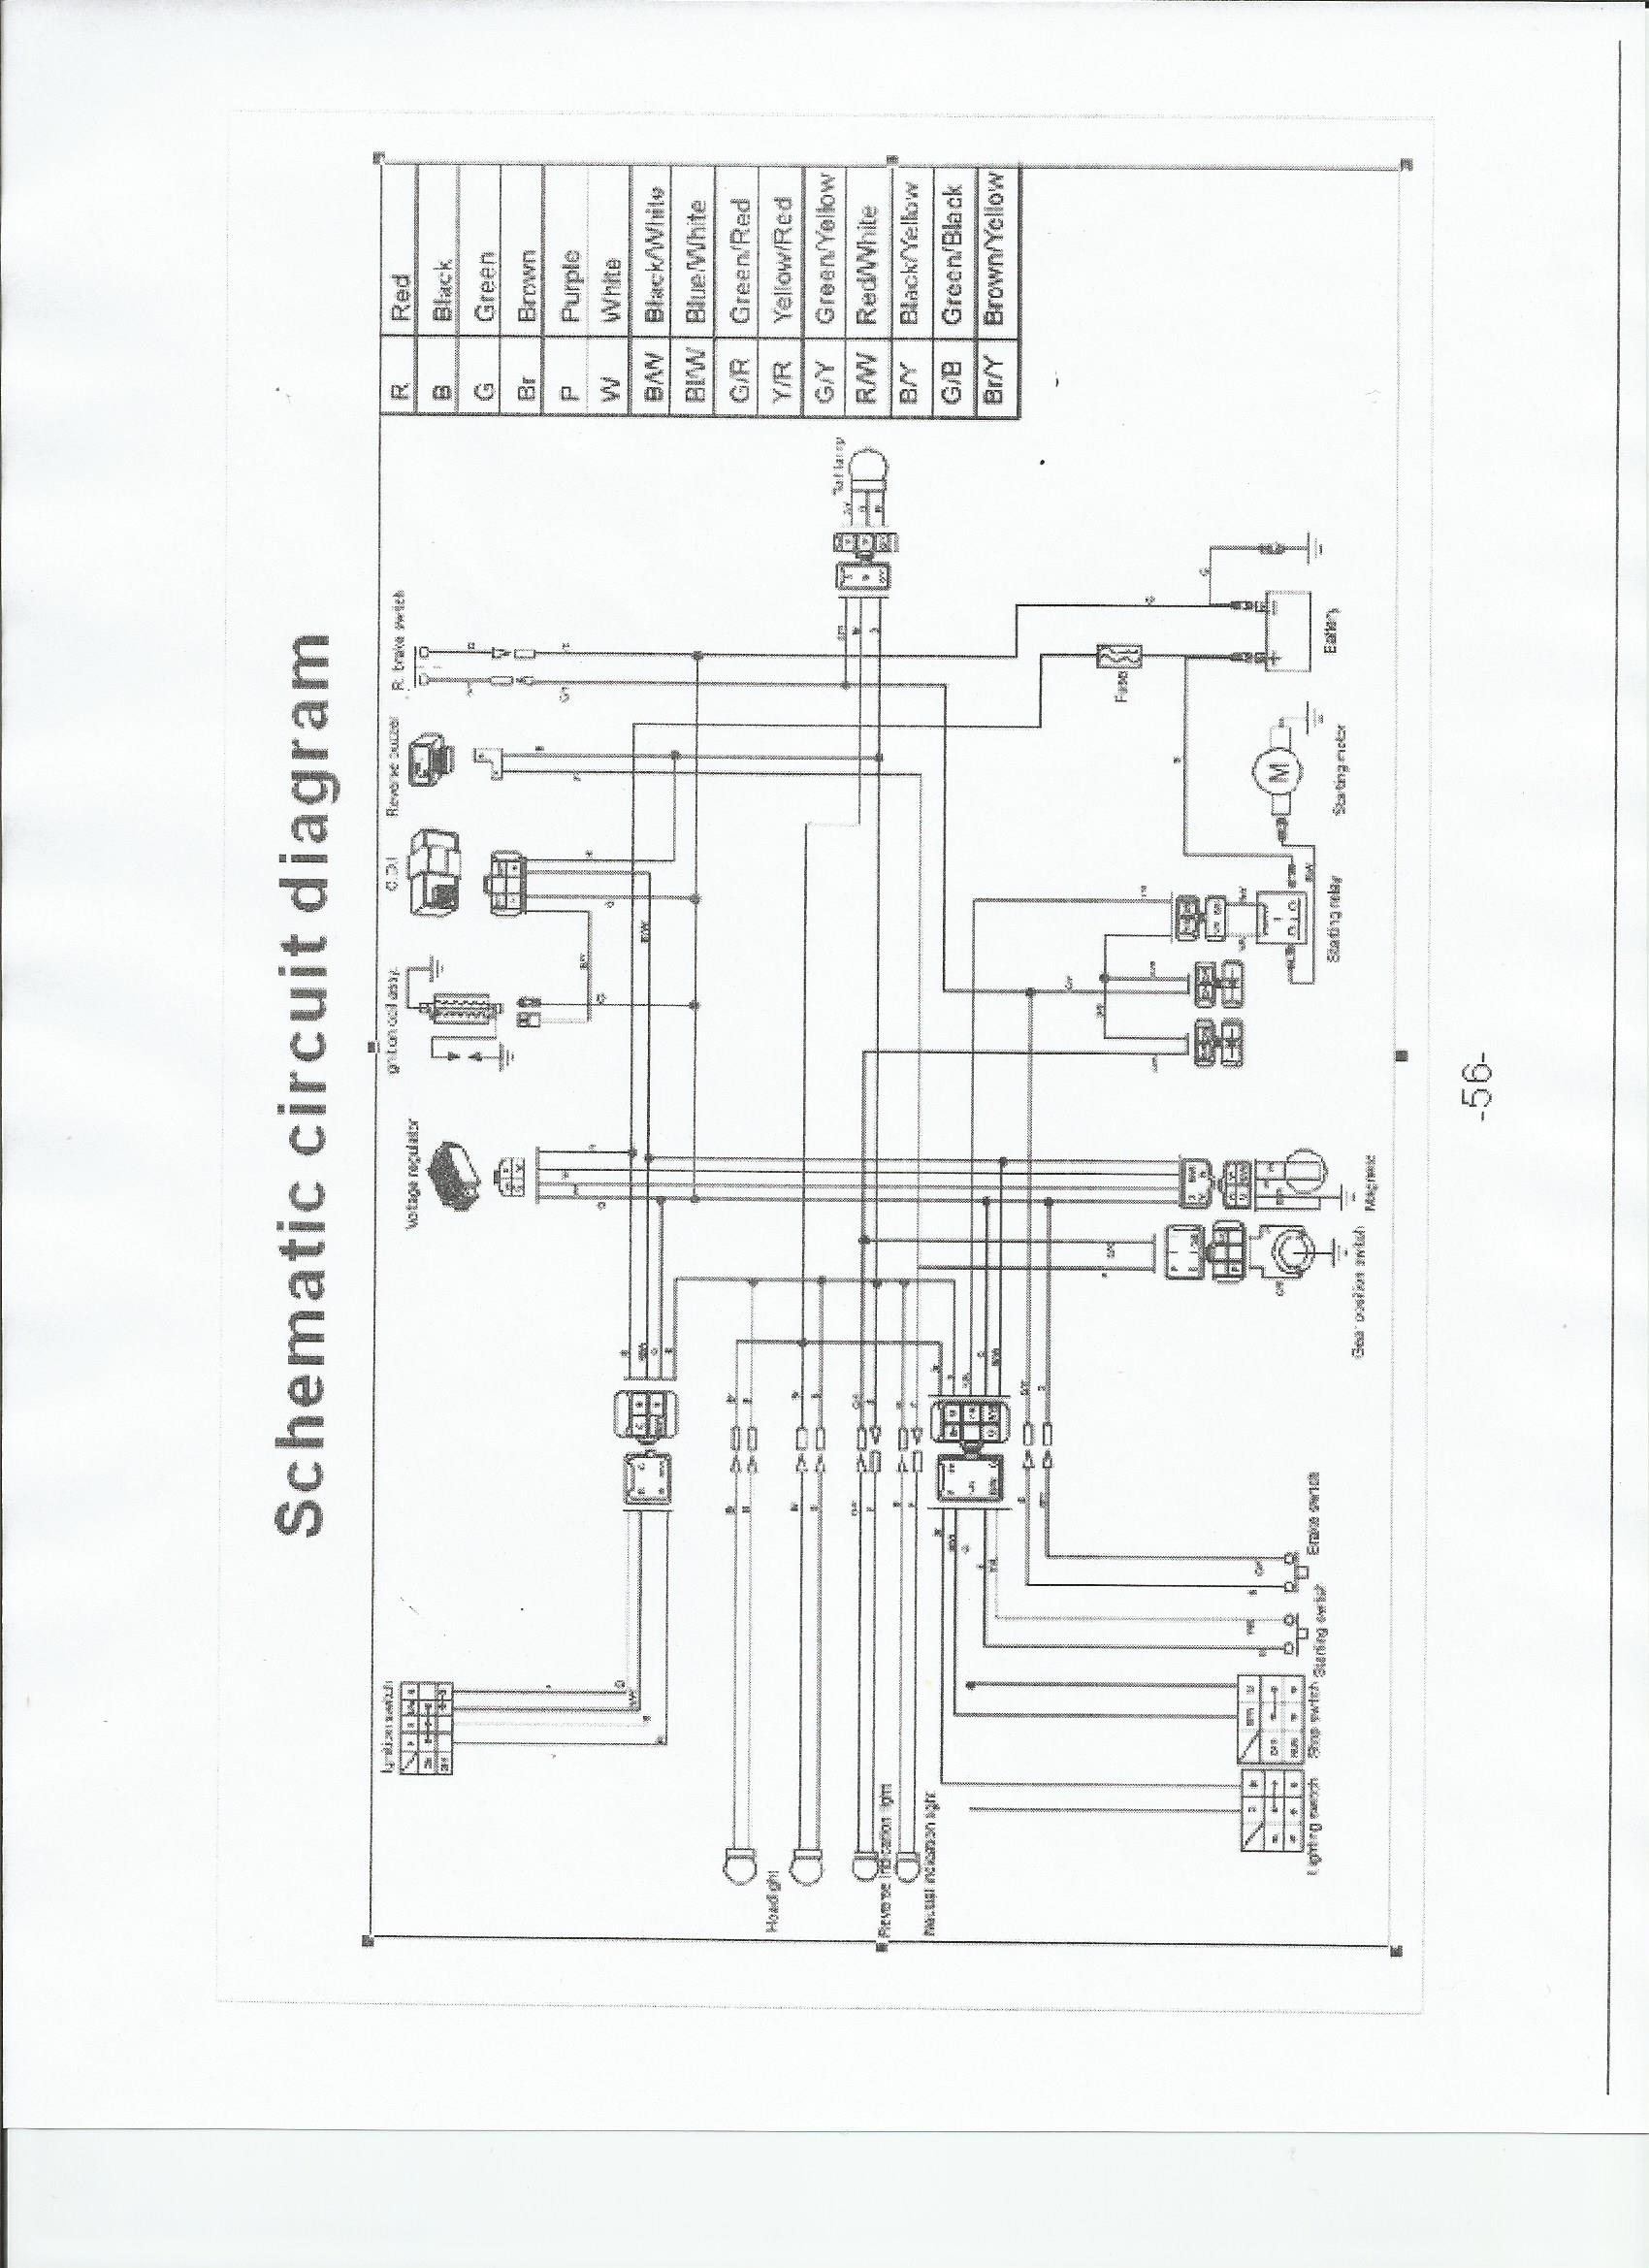 110cc Atv Wiring Diagram Remote